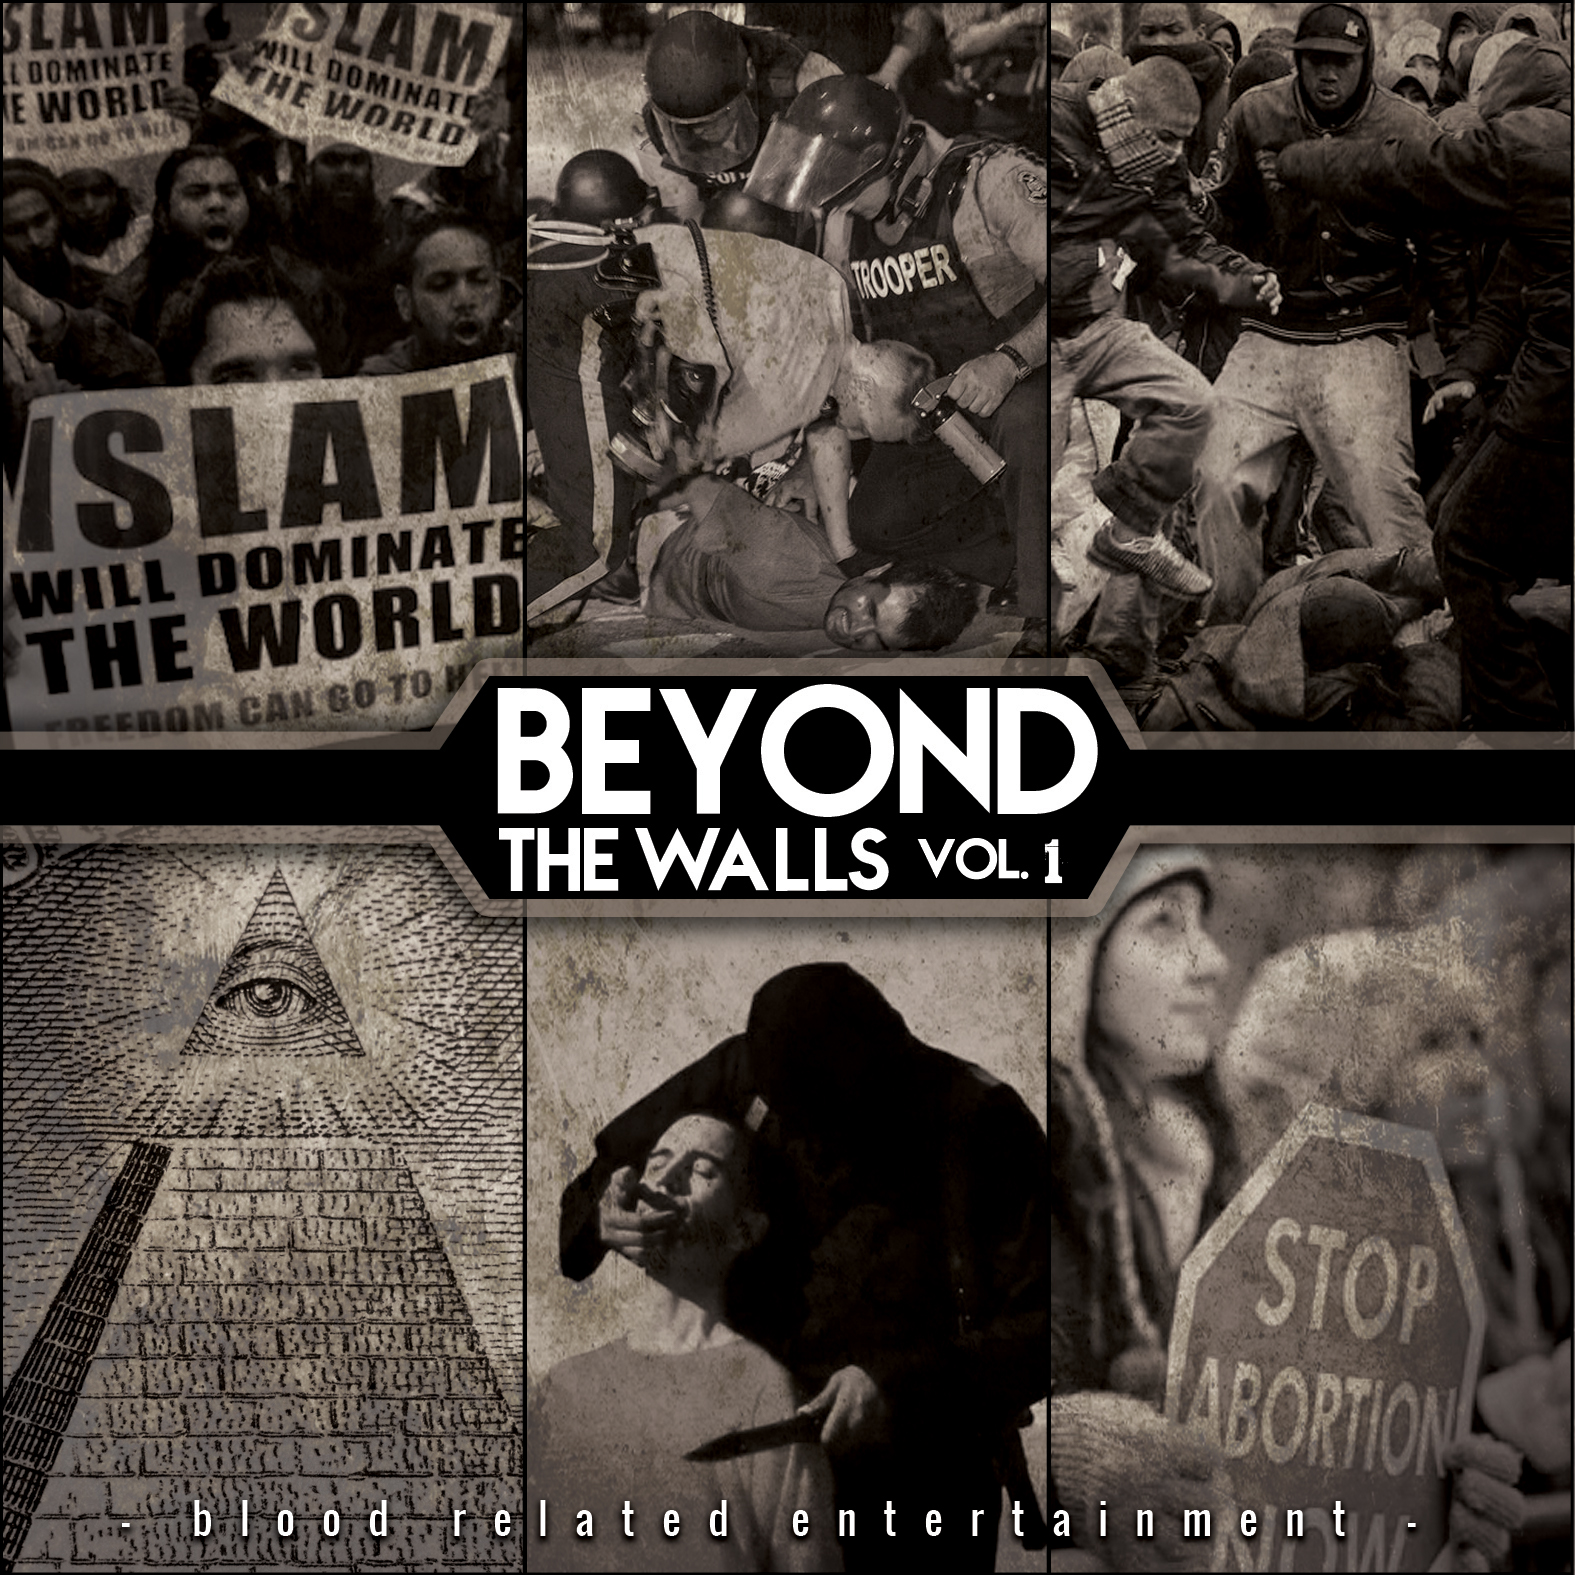 Beyond the Walls, Volume 1 by Blood Related Entertainment